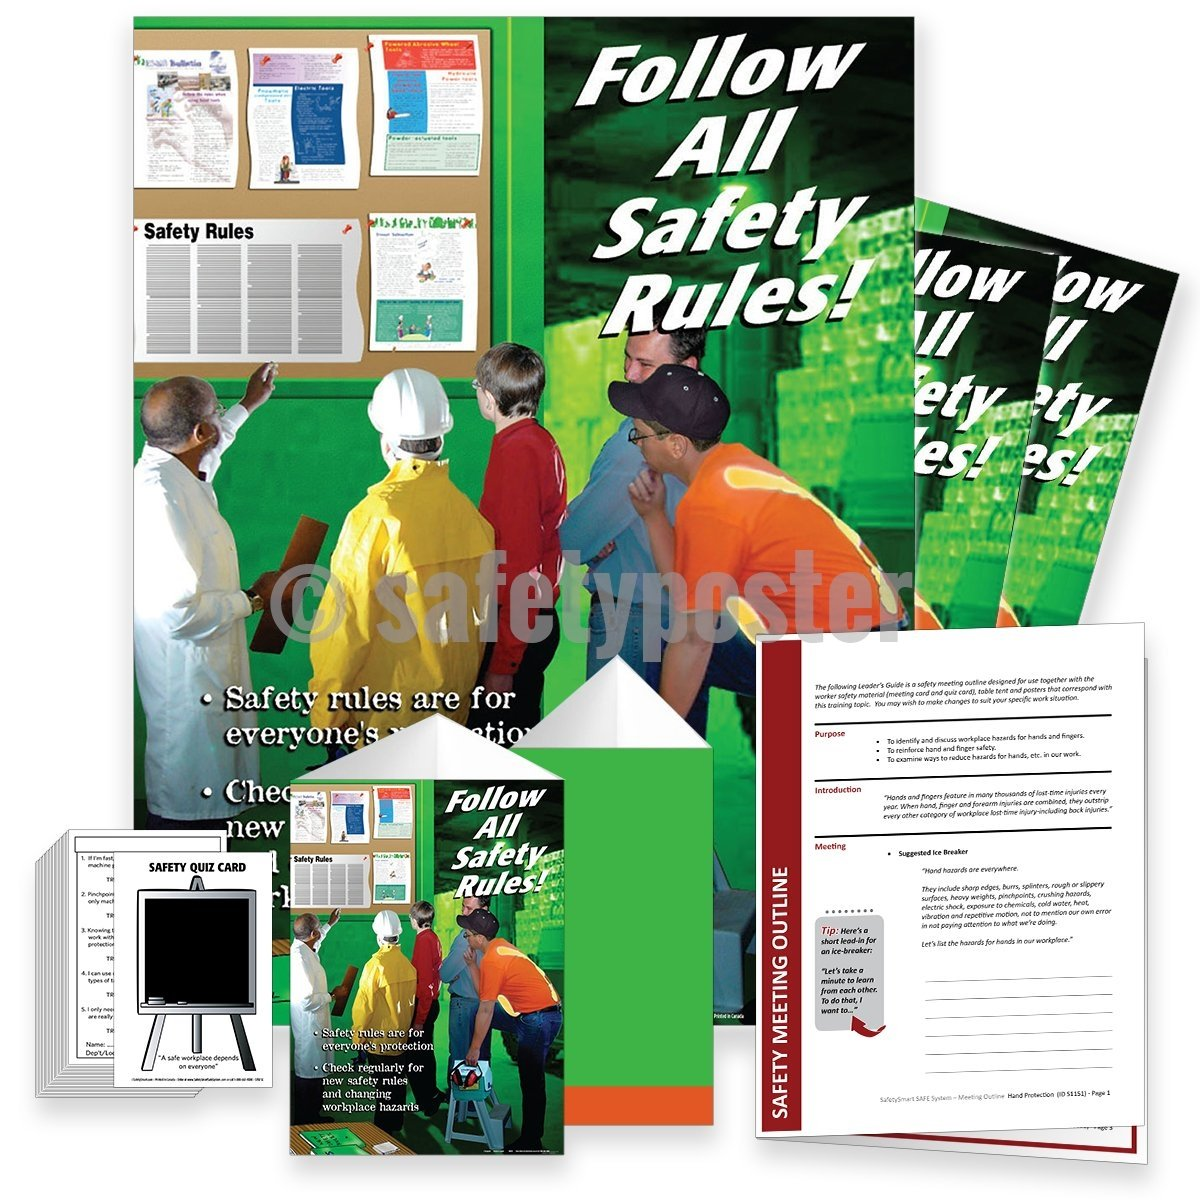 Safety Meeting Kit - Follow All Rules Kits